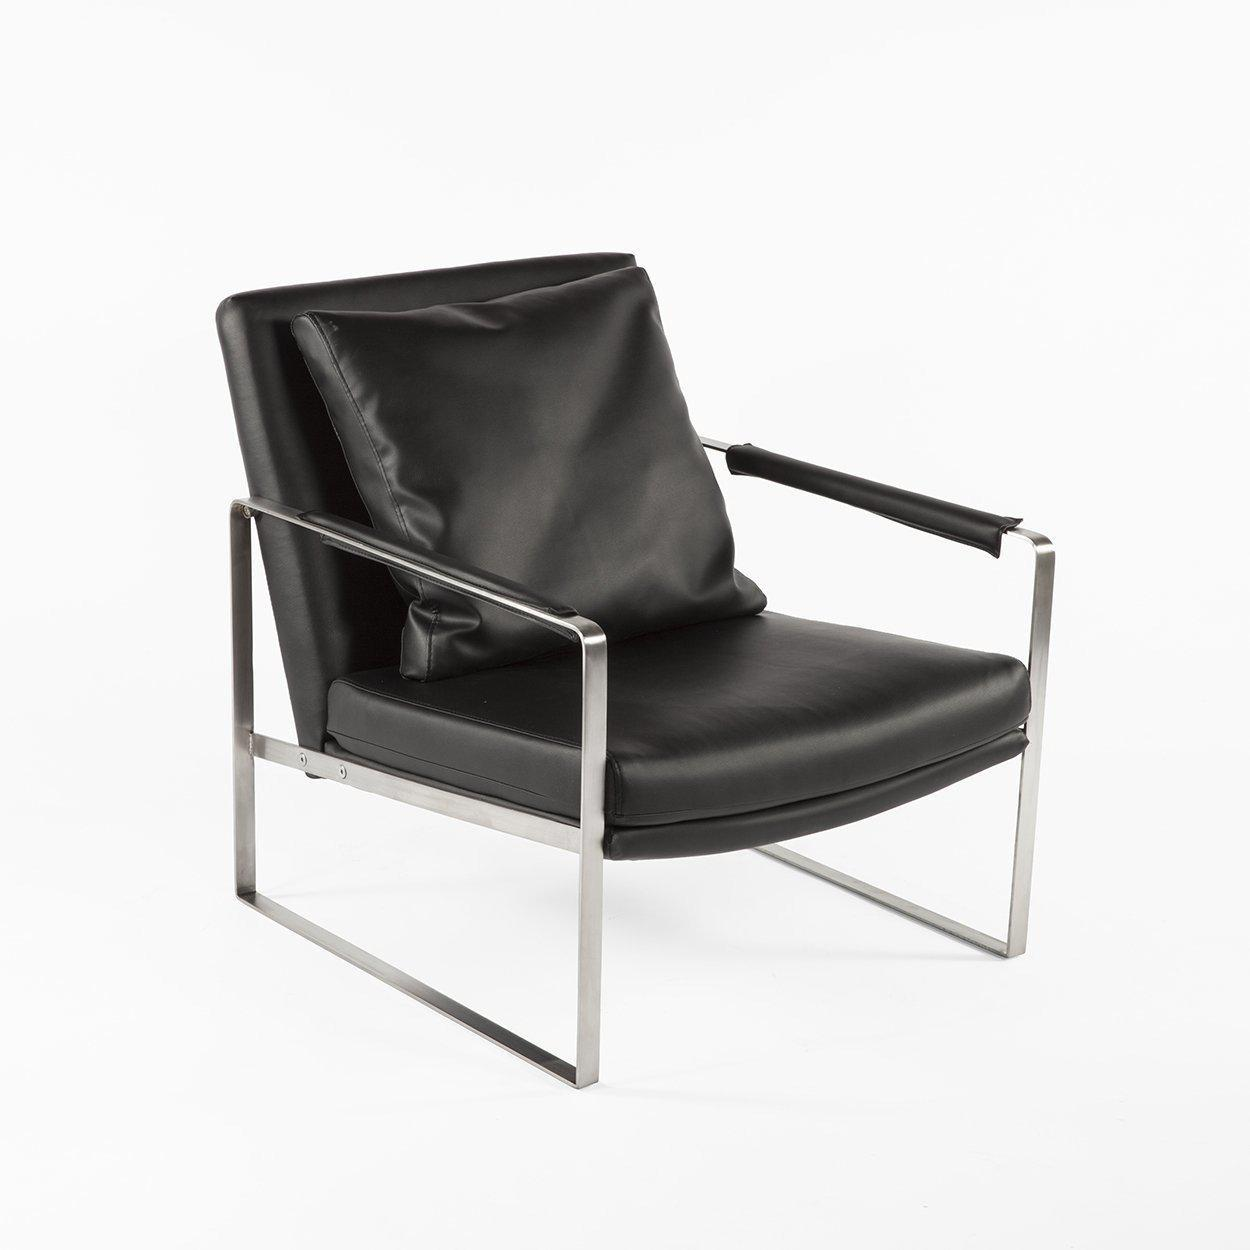 [FV372BLK] The Ustrup Lounge Chair